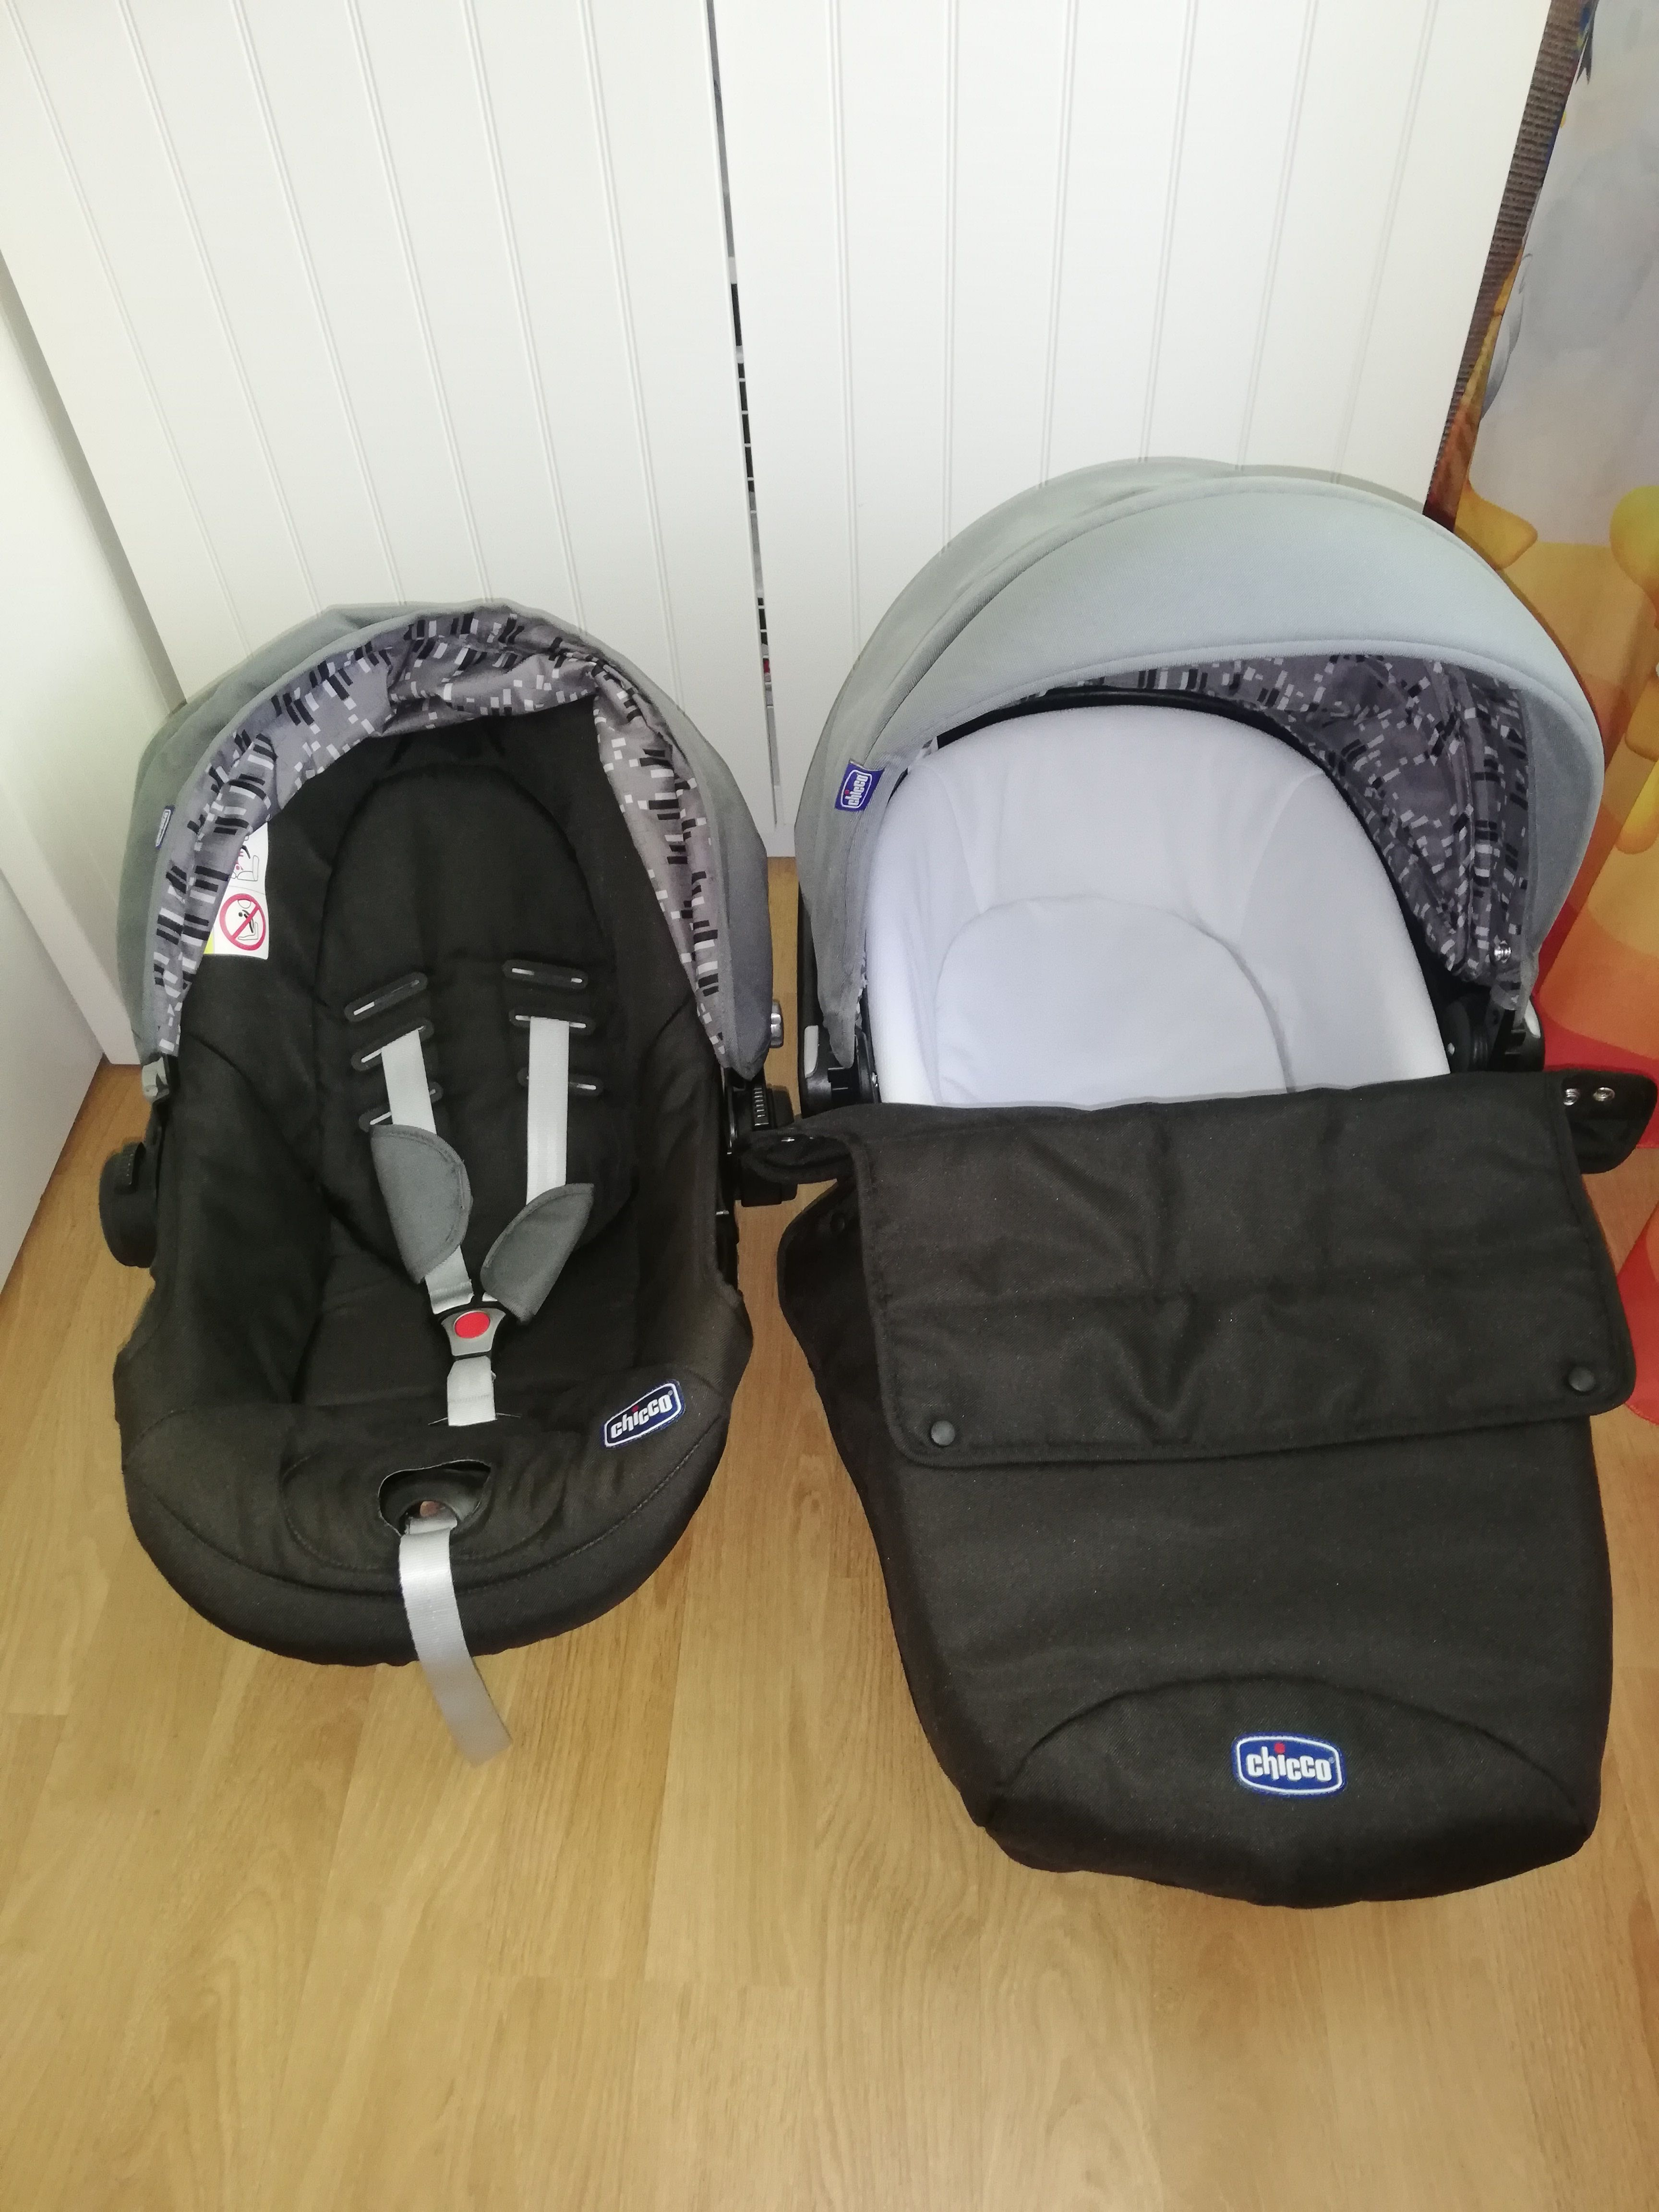 Vand carucior Chicco 3 in 1